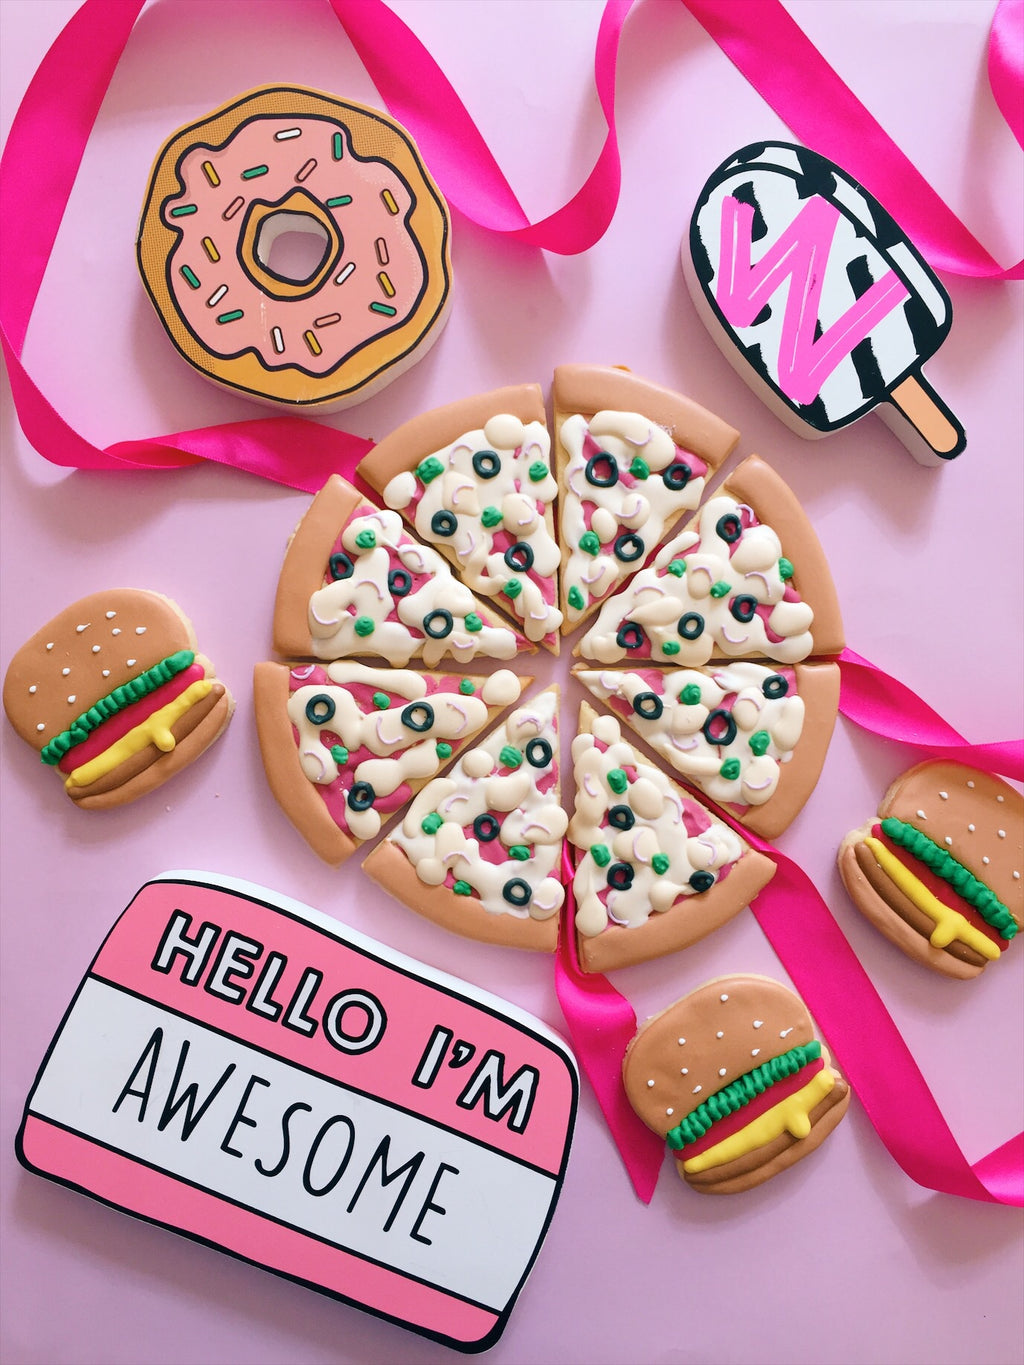 Do You Wanna Pizza Me? Cookies - Sugar Rush by Steph